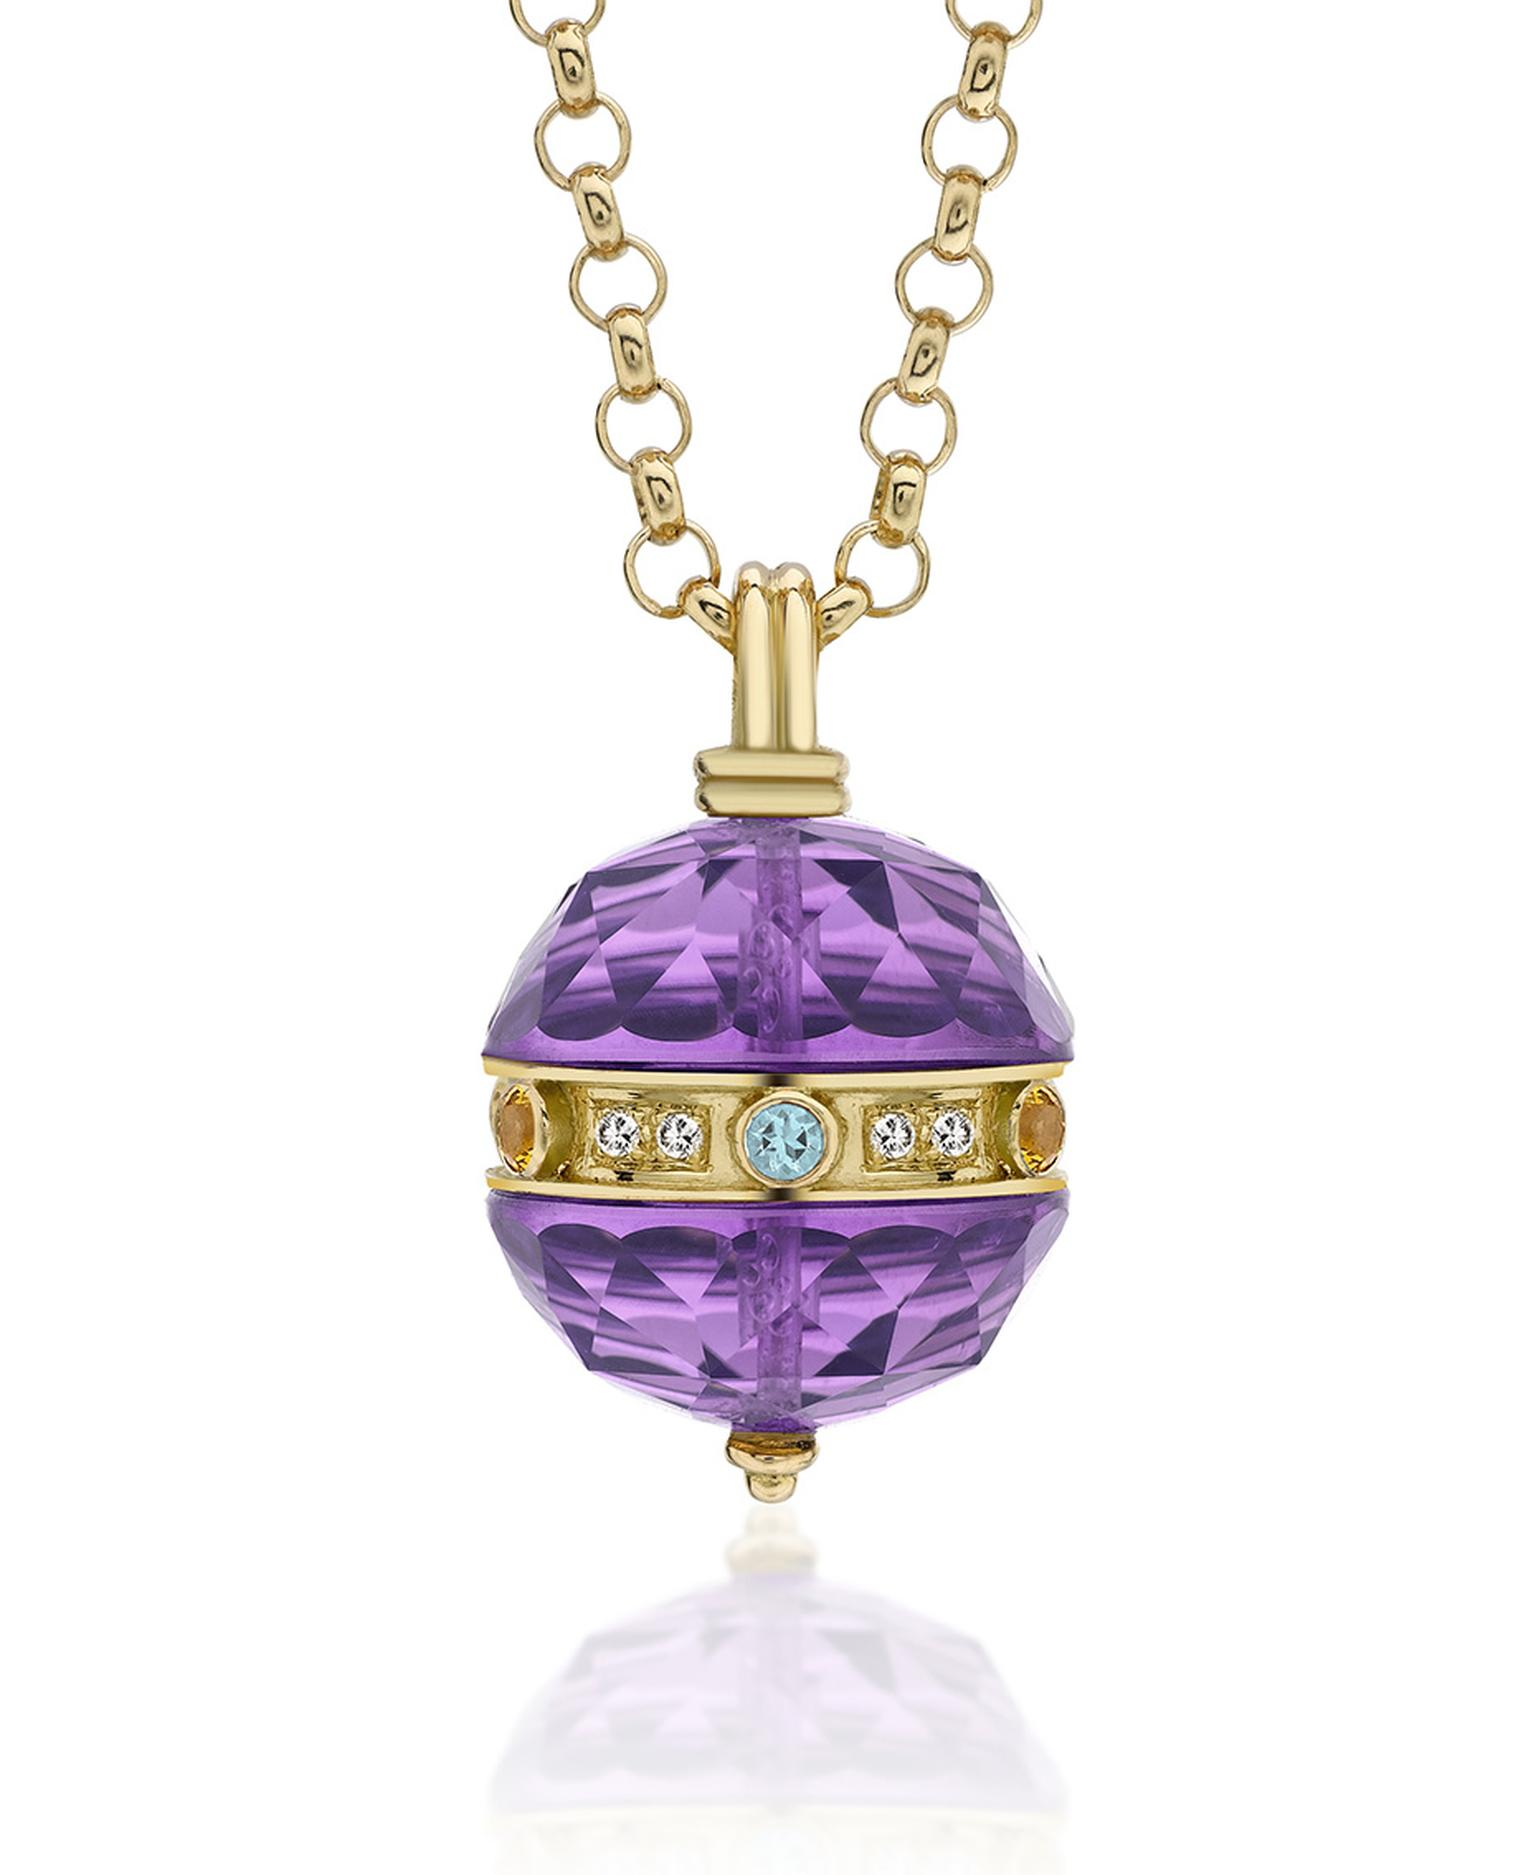 The glossy ripeness of purple quartz is fuelling the desirability of amethyst jewellery